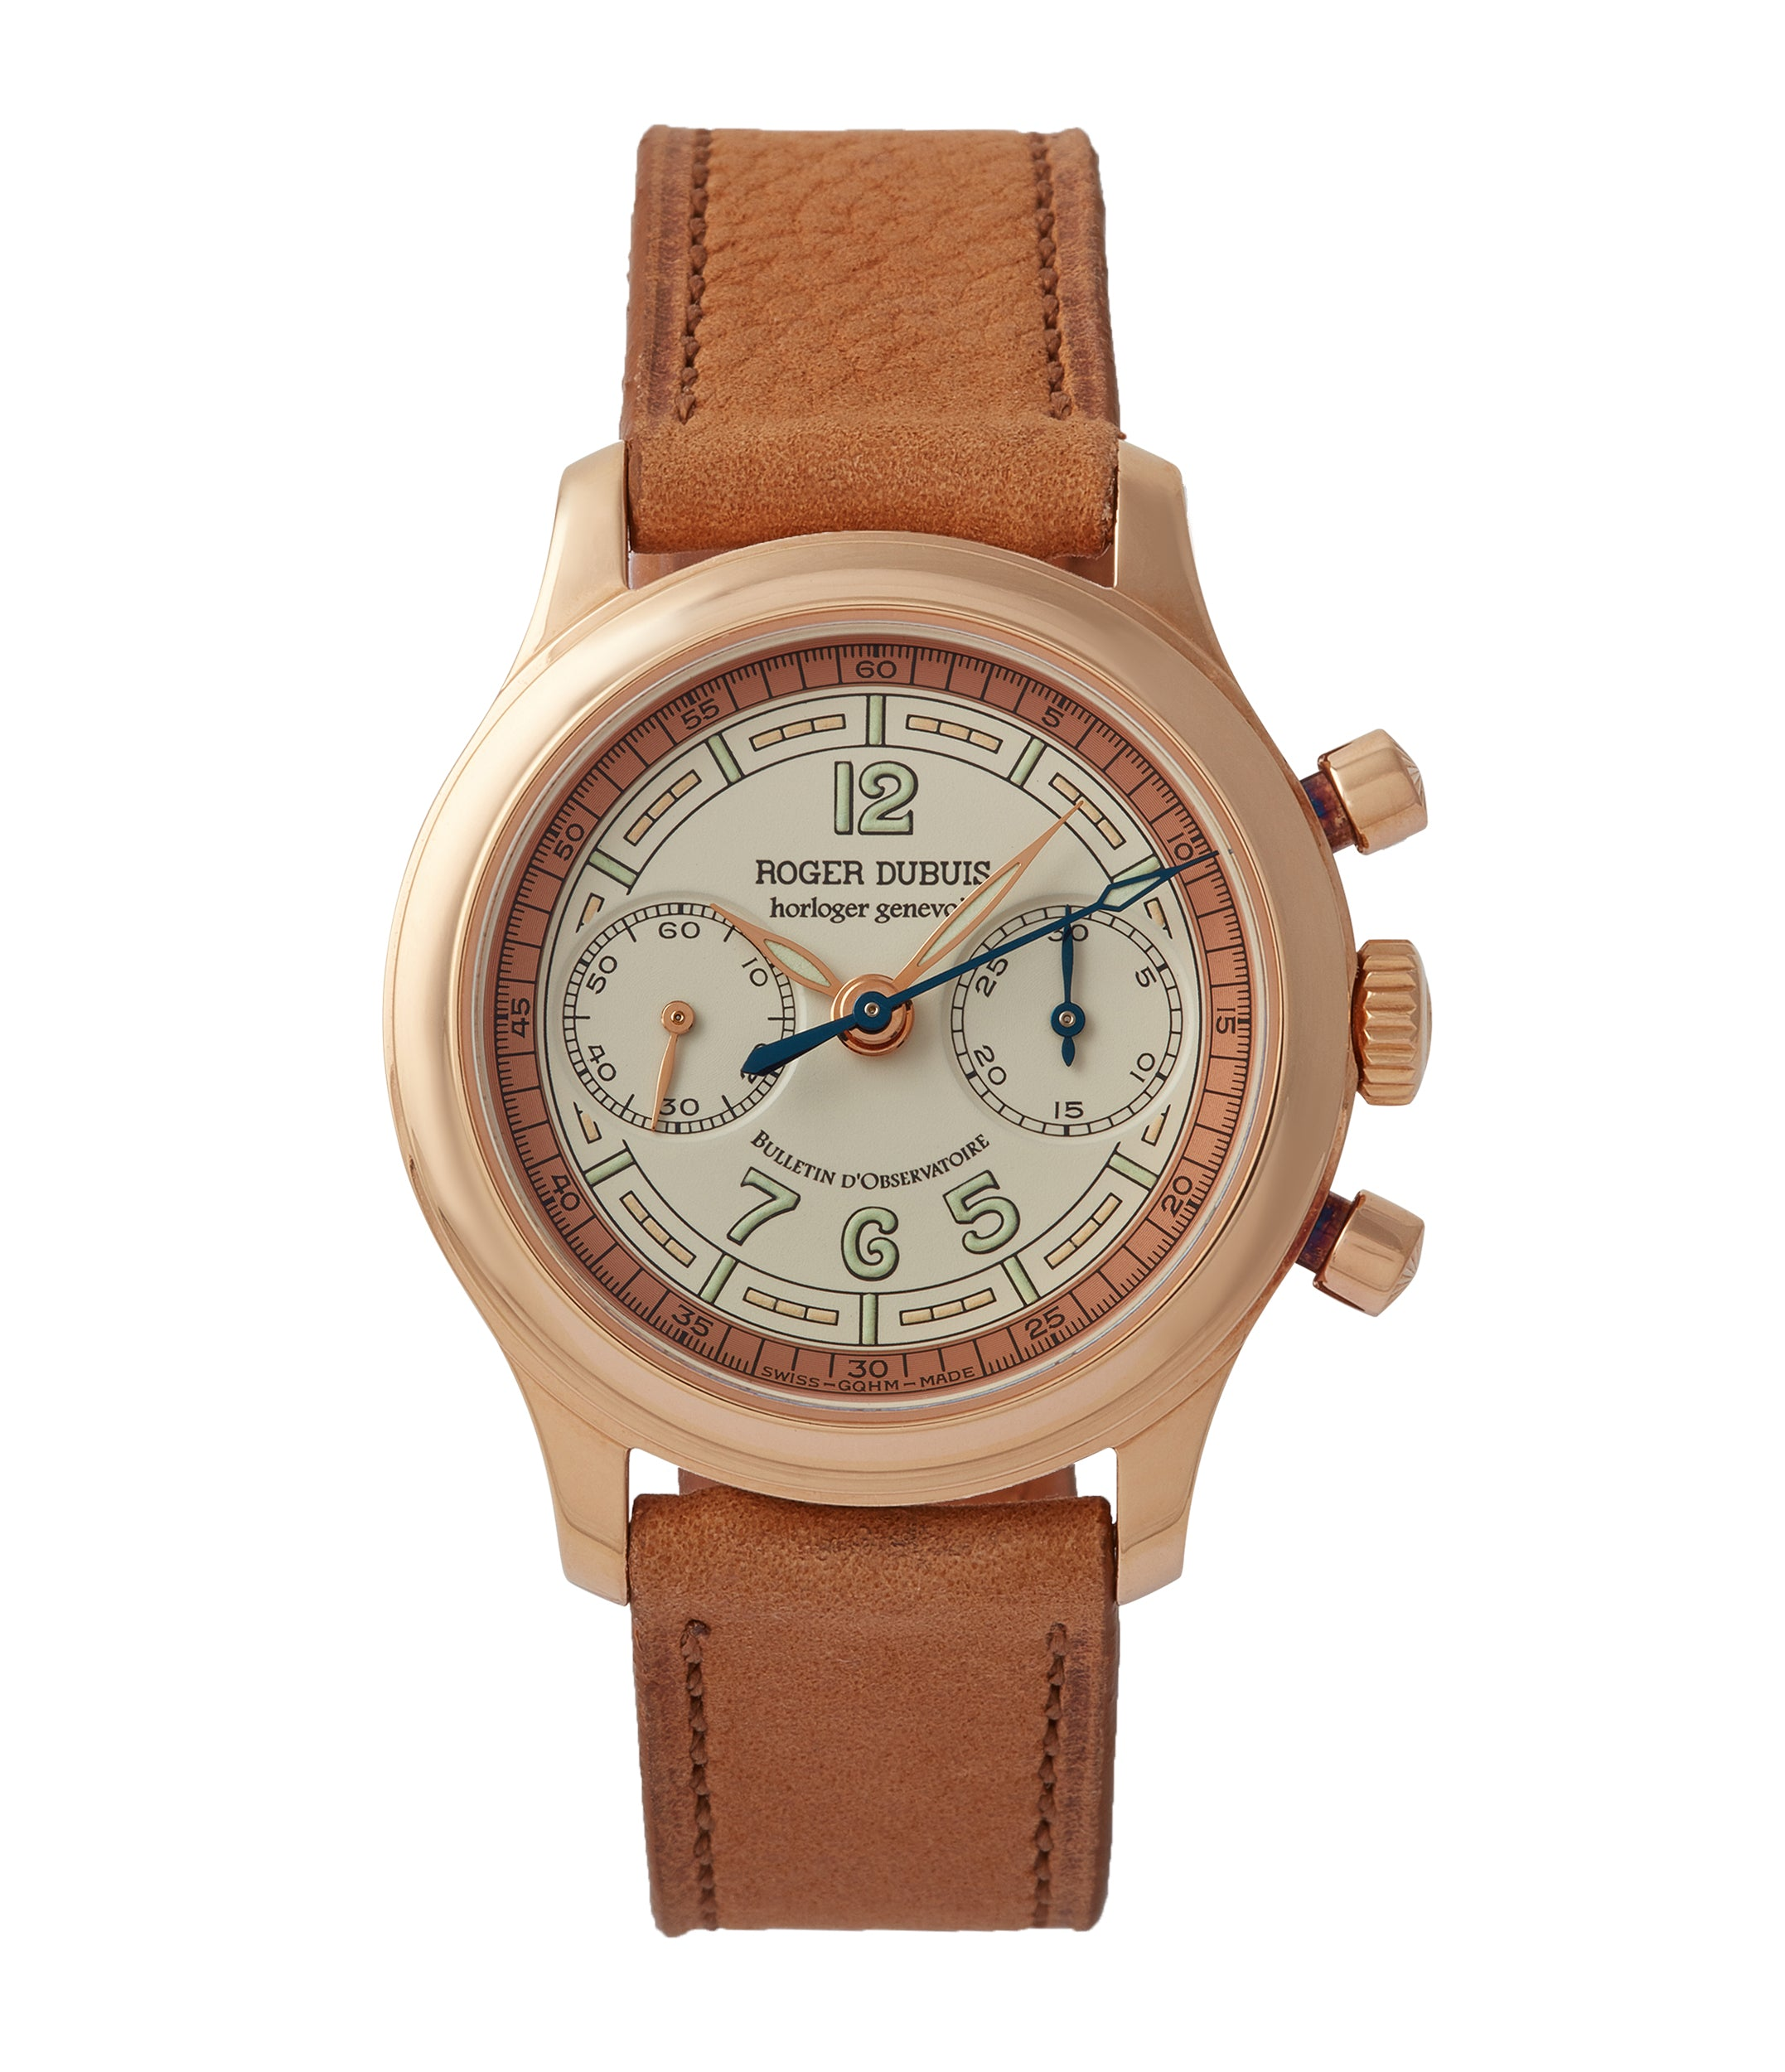 buy Roger Dubuis Hommage Chronograph early H34 560 limited edition rose gold sector dial rare dress watch for sale online at A Collected Man London